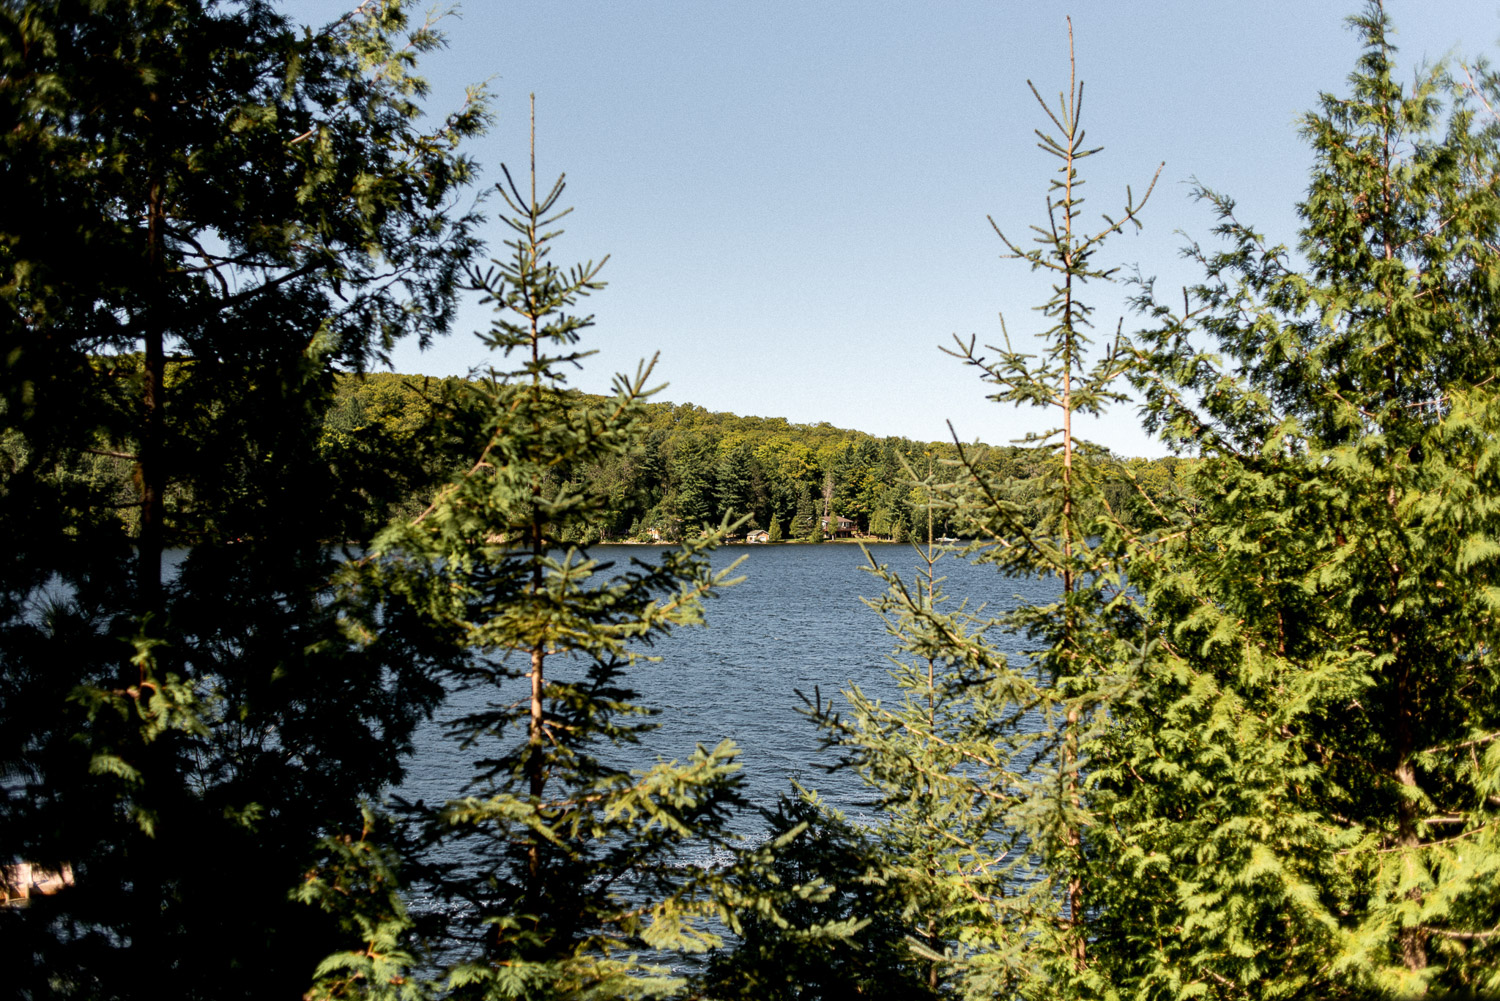 lanscape photo of paudash lake in ontario